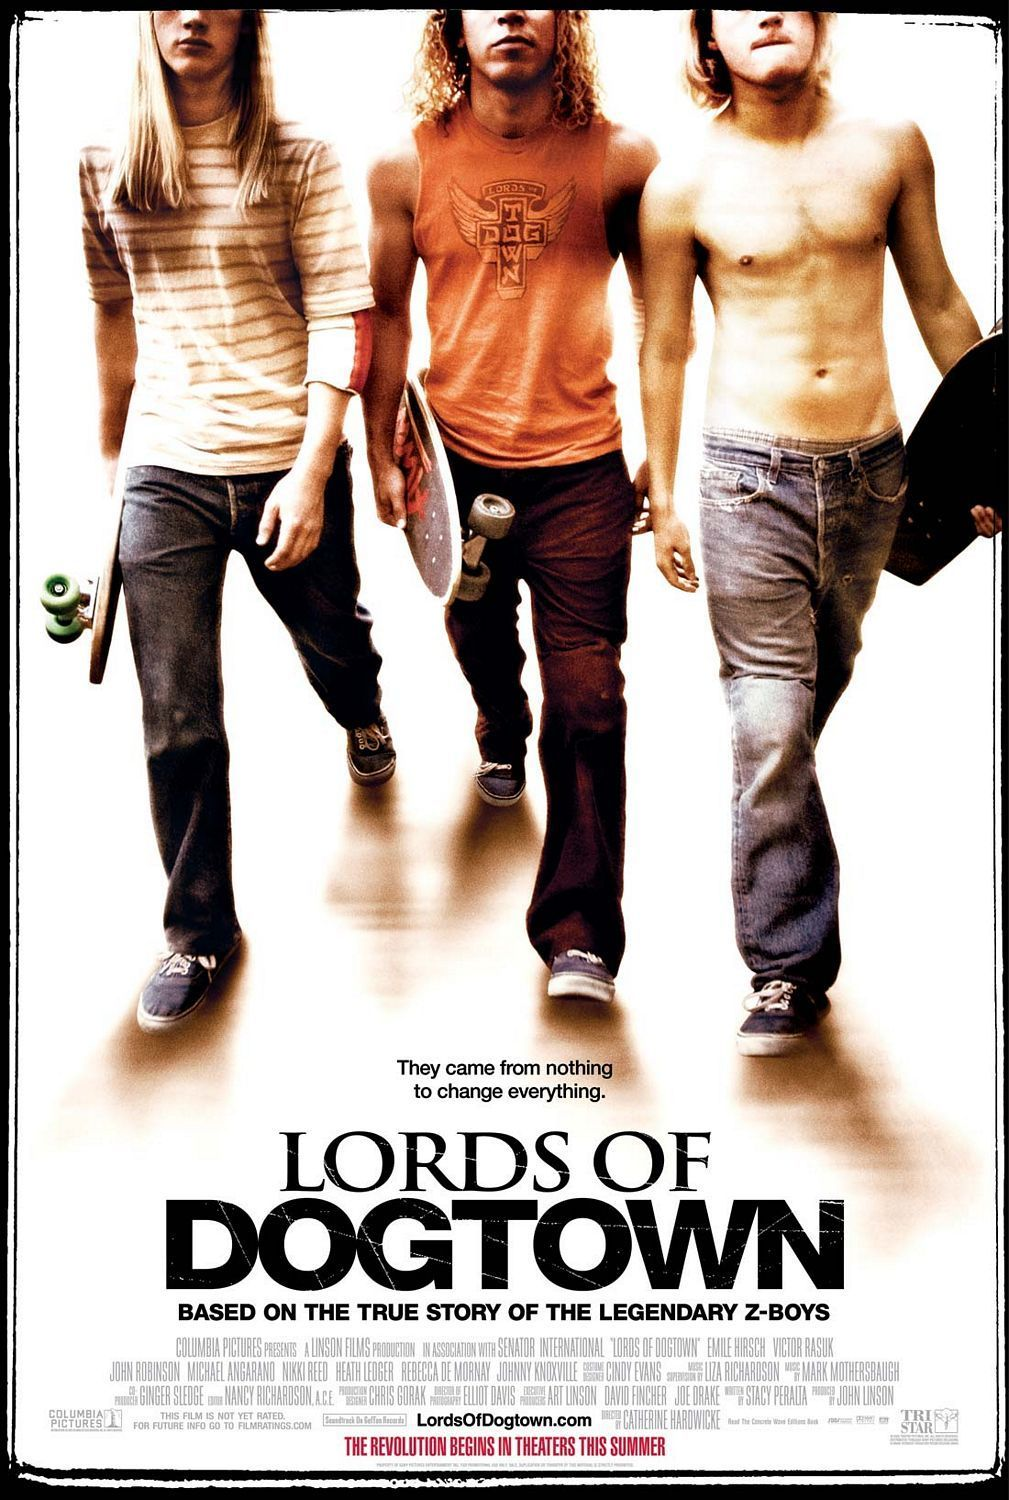 Lords of dogtown  poster is copied by Zindagi na milegi doobara